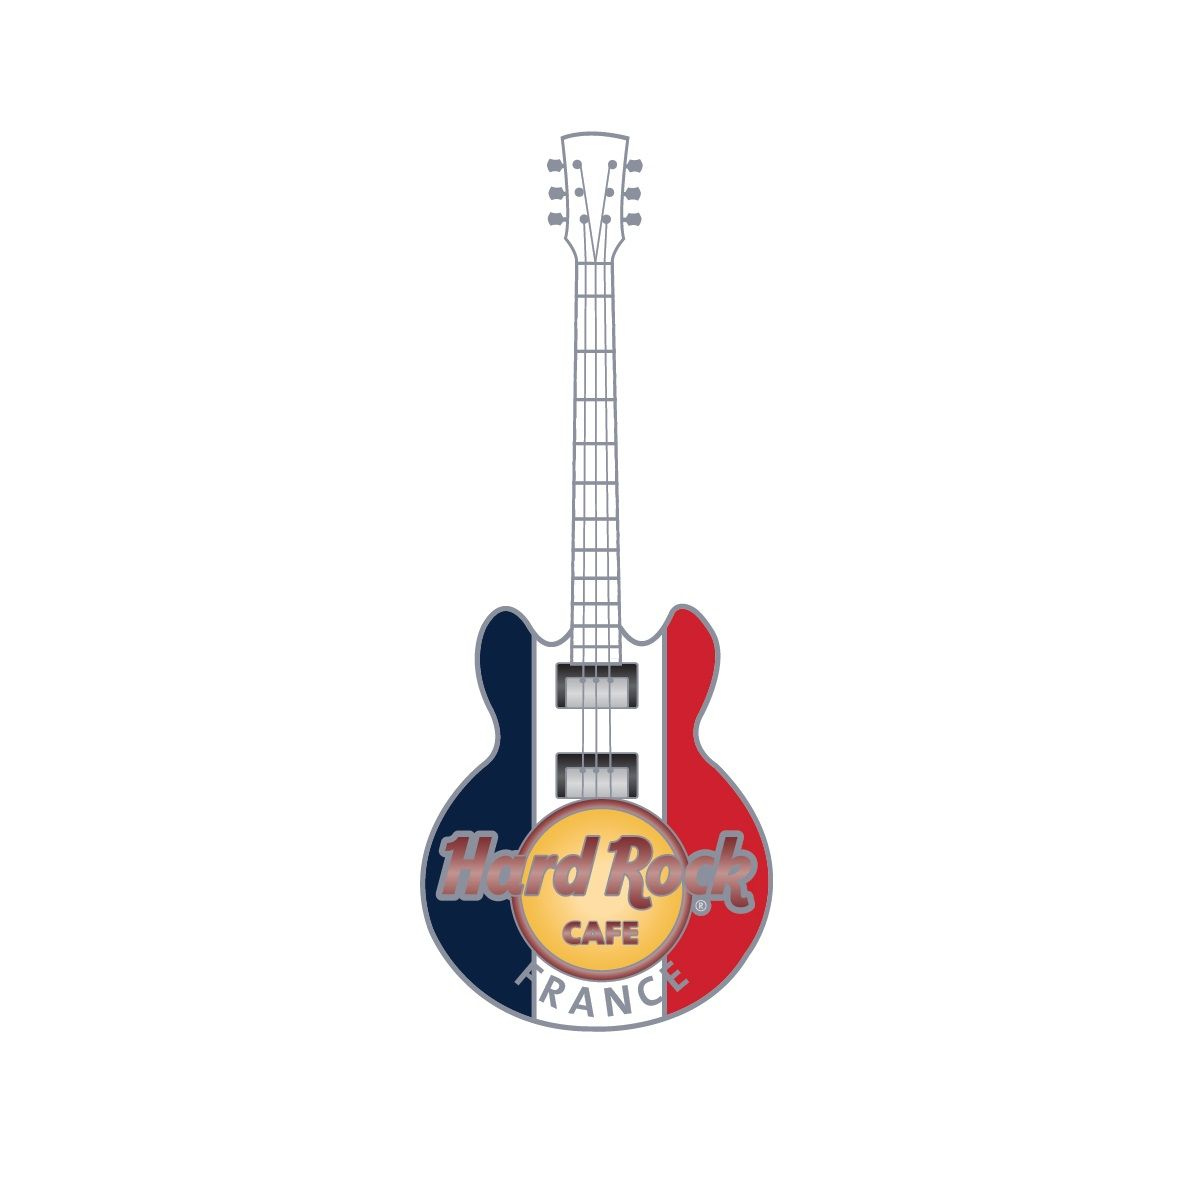 3D Country Flag Guitar Pin France